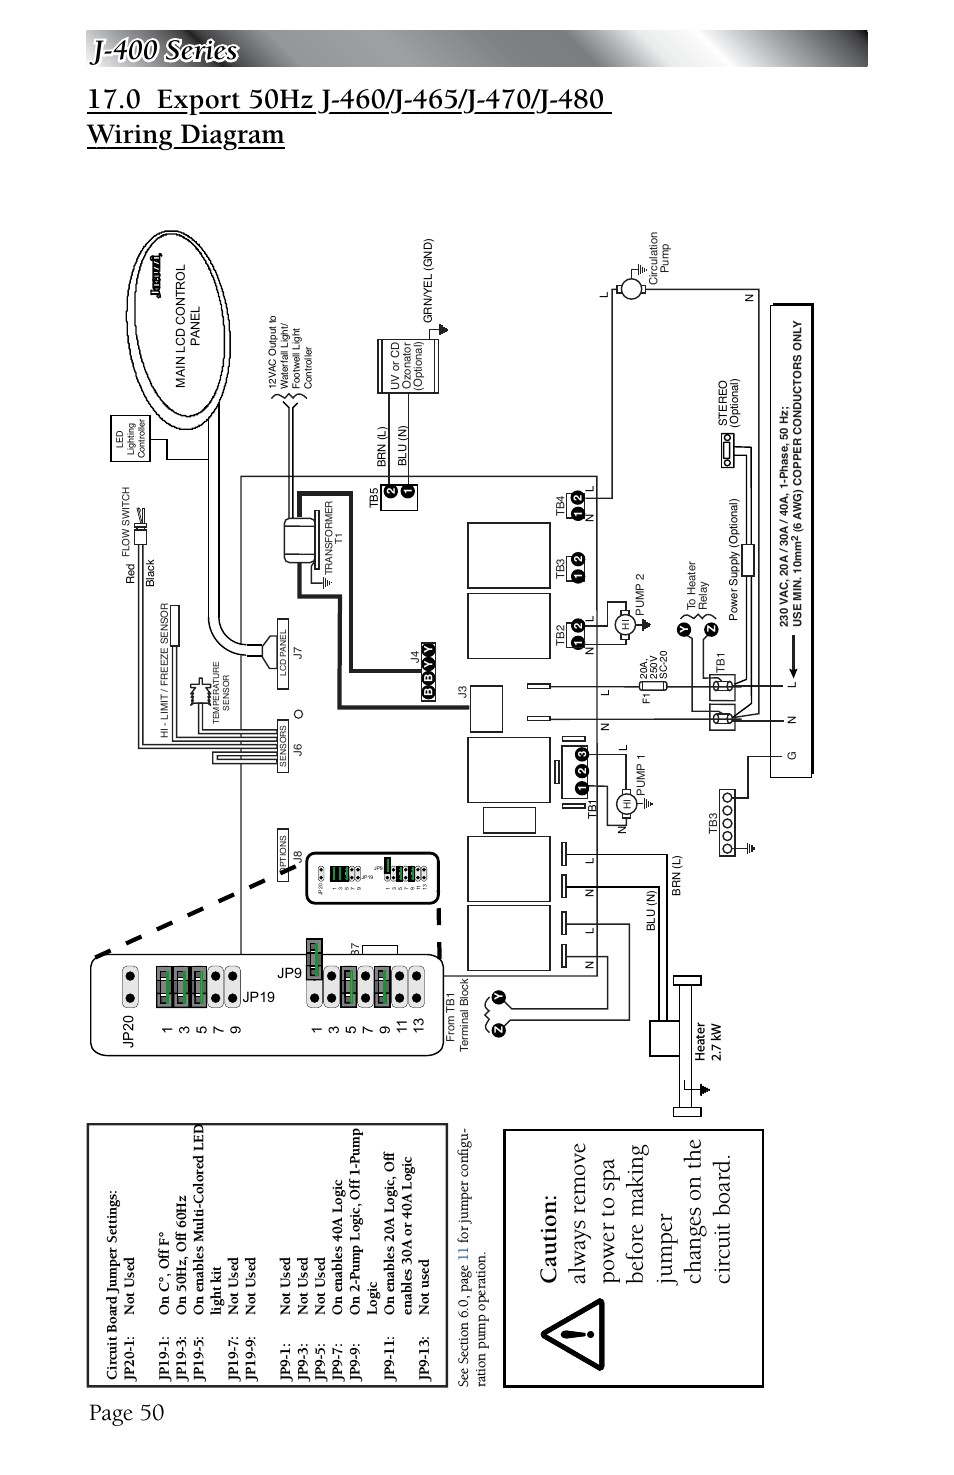 Wiring Diagram Pool Pump Wiring Diagram For 230 Volt